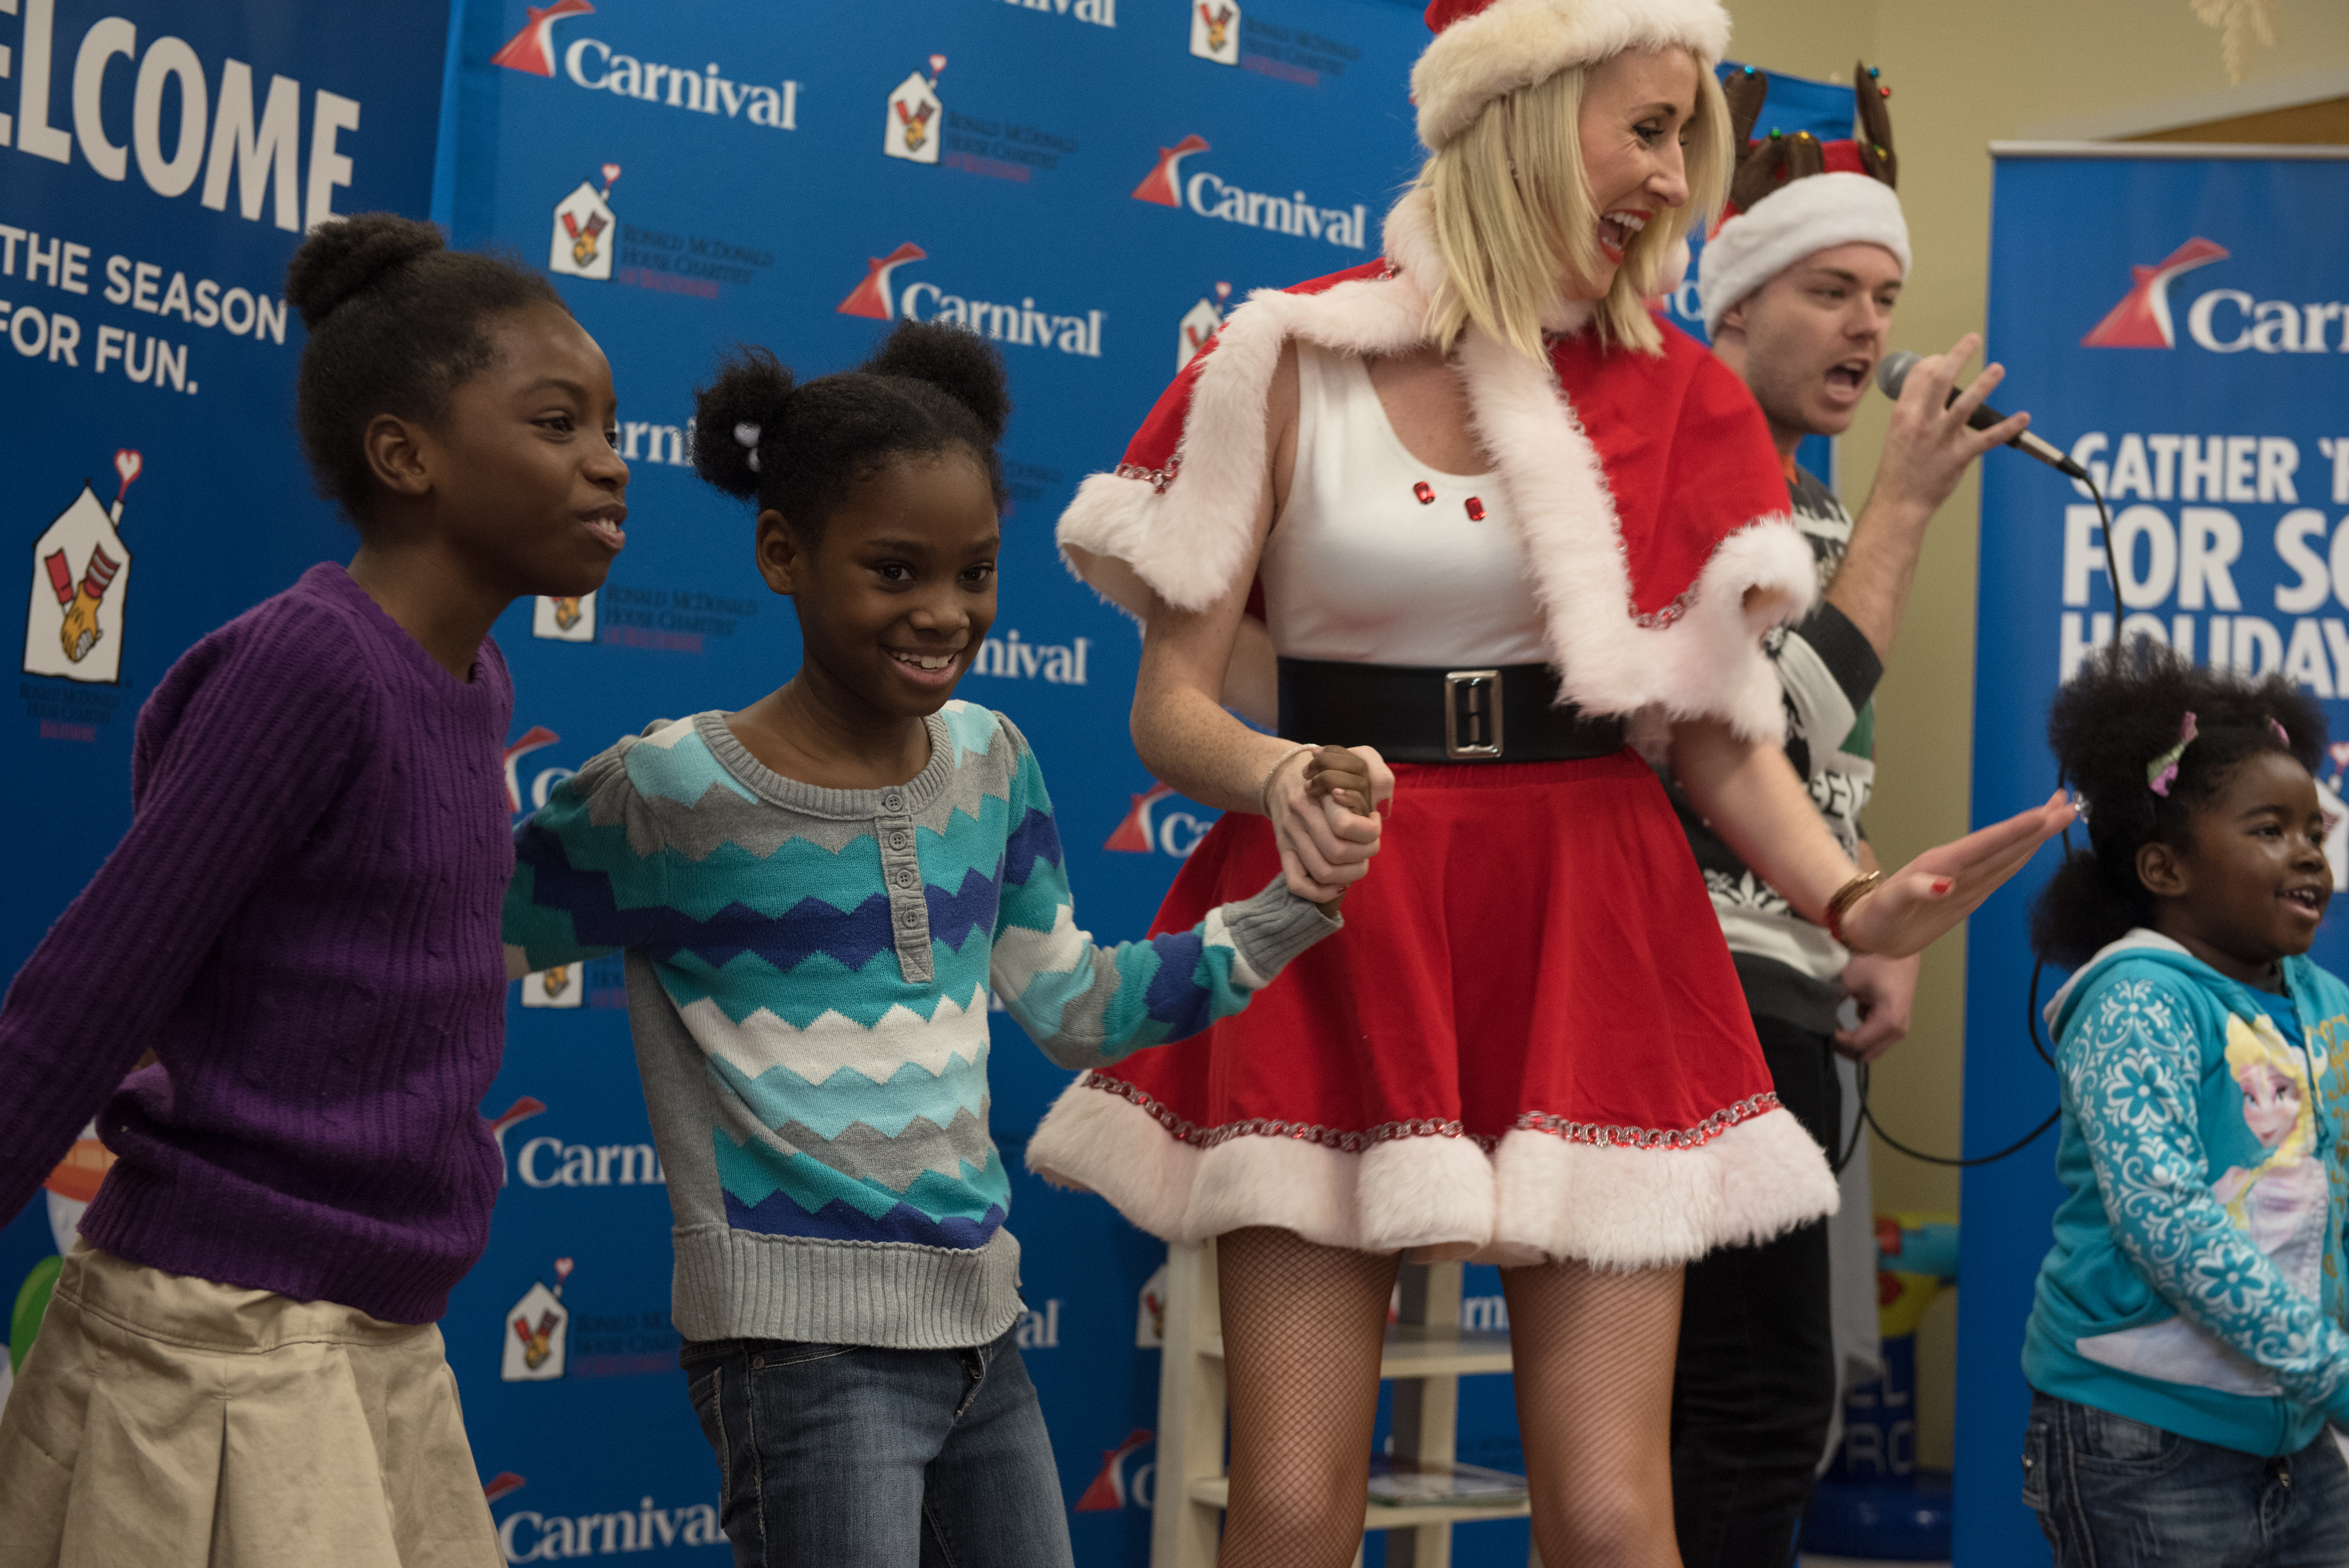 Carnival's 'Merry Grinchmas' Celebrations Bring Holiday Cheer To Kids At Medical University Of South Carolina Children's Hospital In Charleston And Baltimore's Ronald McDonald House